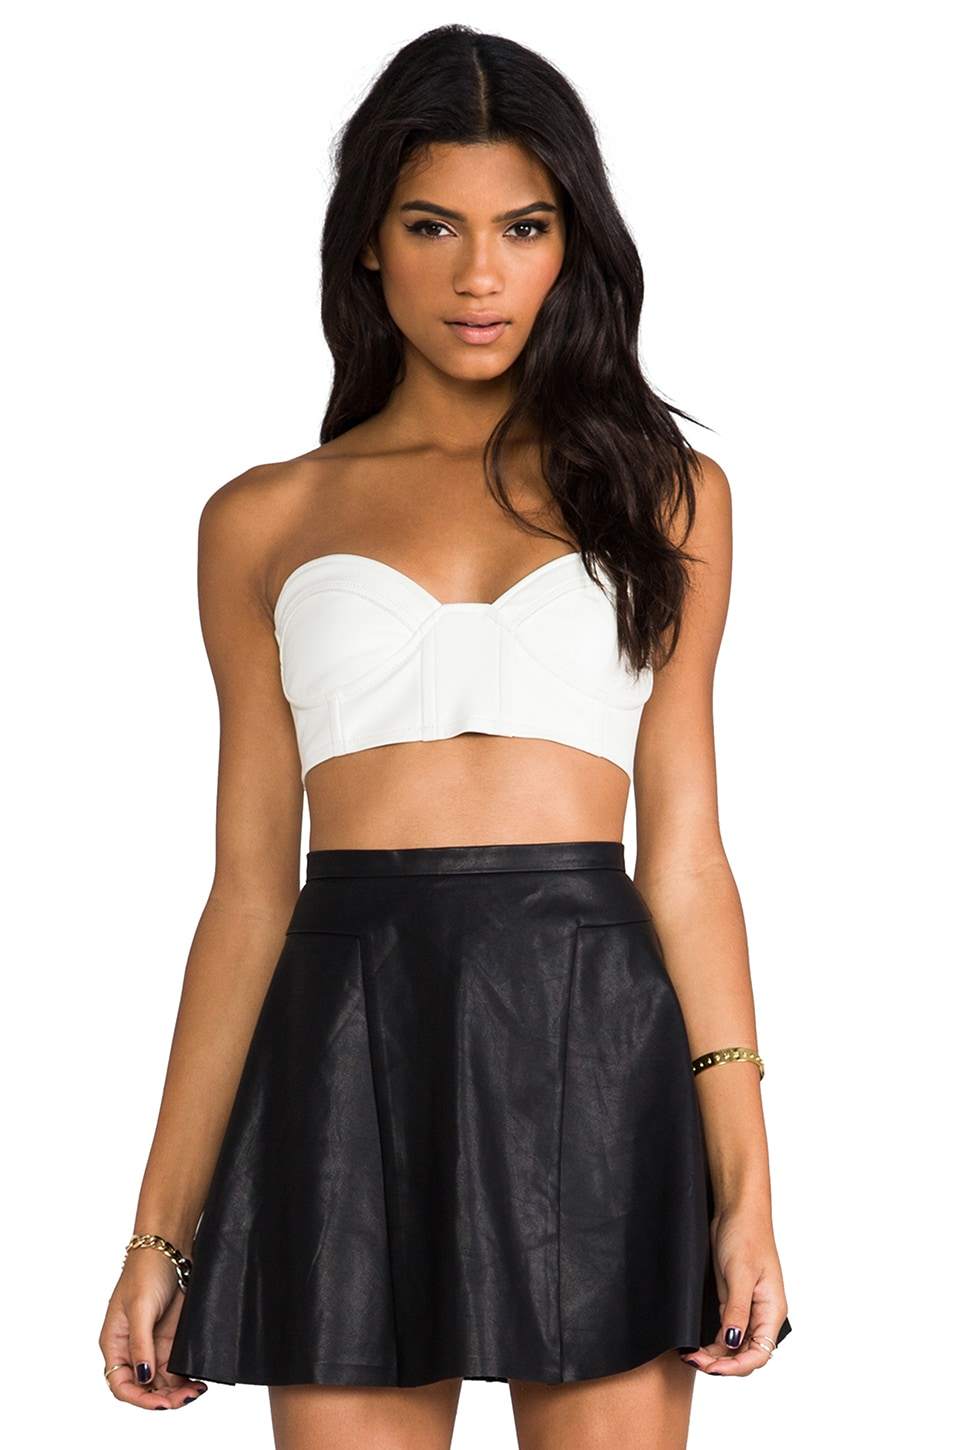 This is a Love Song Loaded Crop Top in White